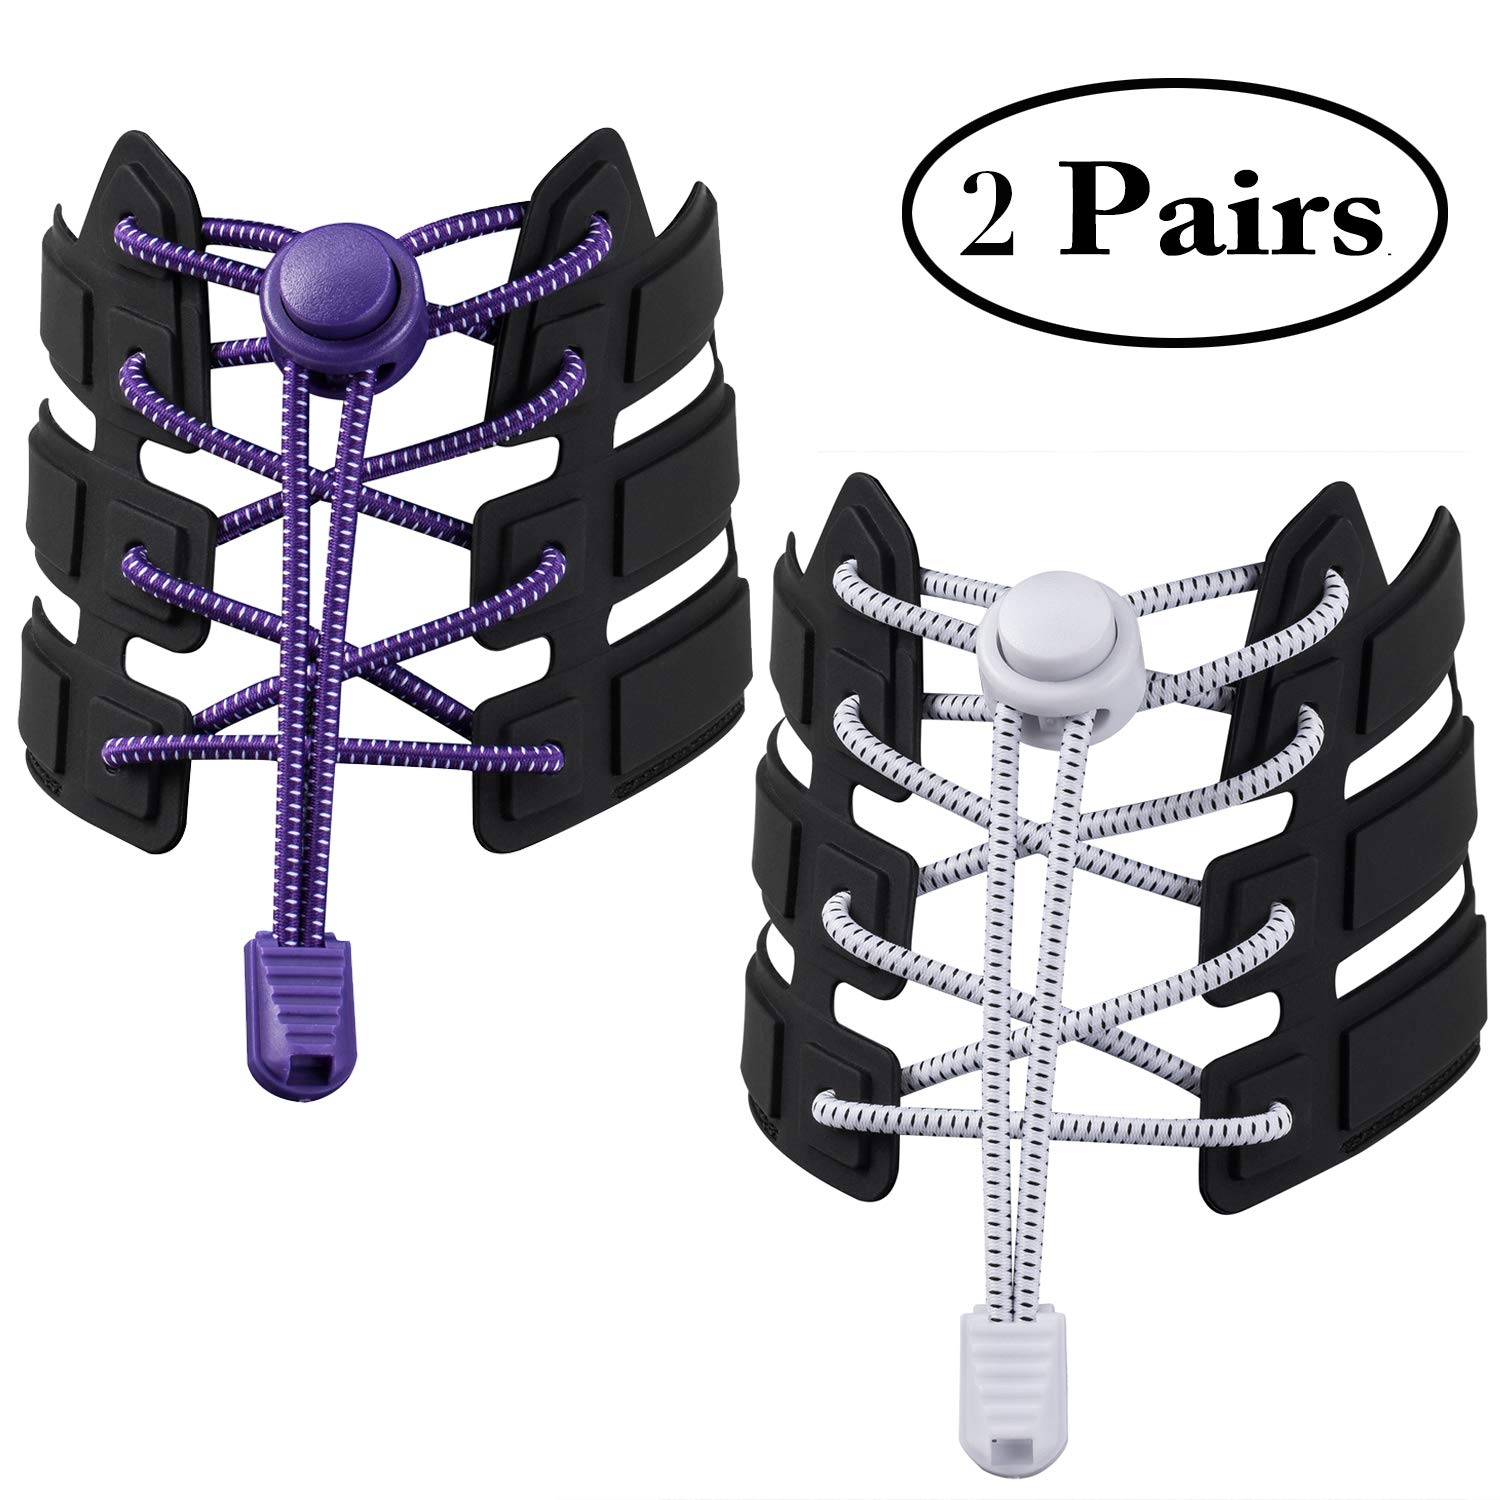 2 Pairs Shoelaces, No Tie Shoelaces Elastic Shoe Laces for Kids and Adults, Adjustable Tieless Rubber Shoe Laces Strings for Sneakers Boots Board and Casual Shoes